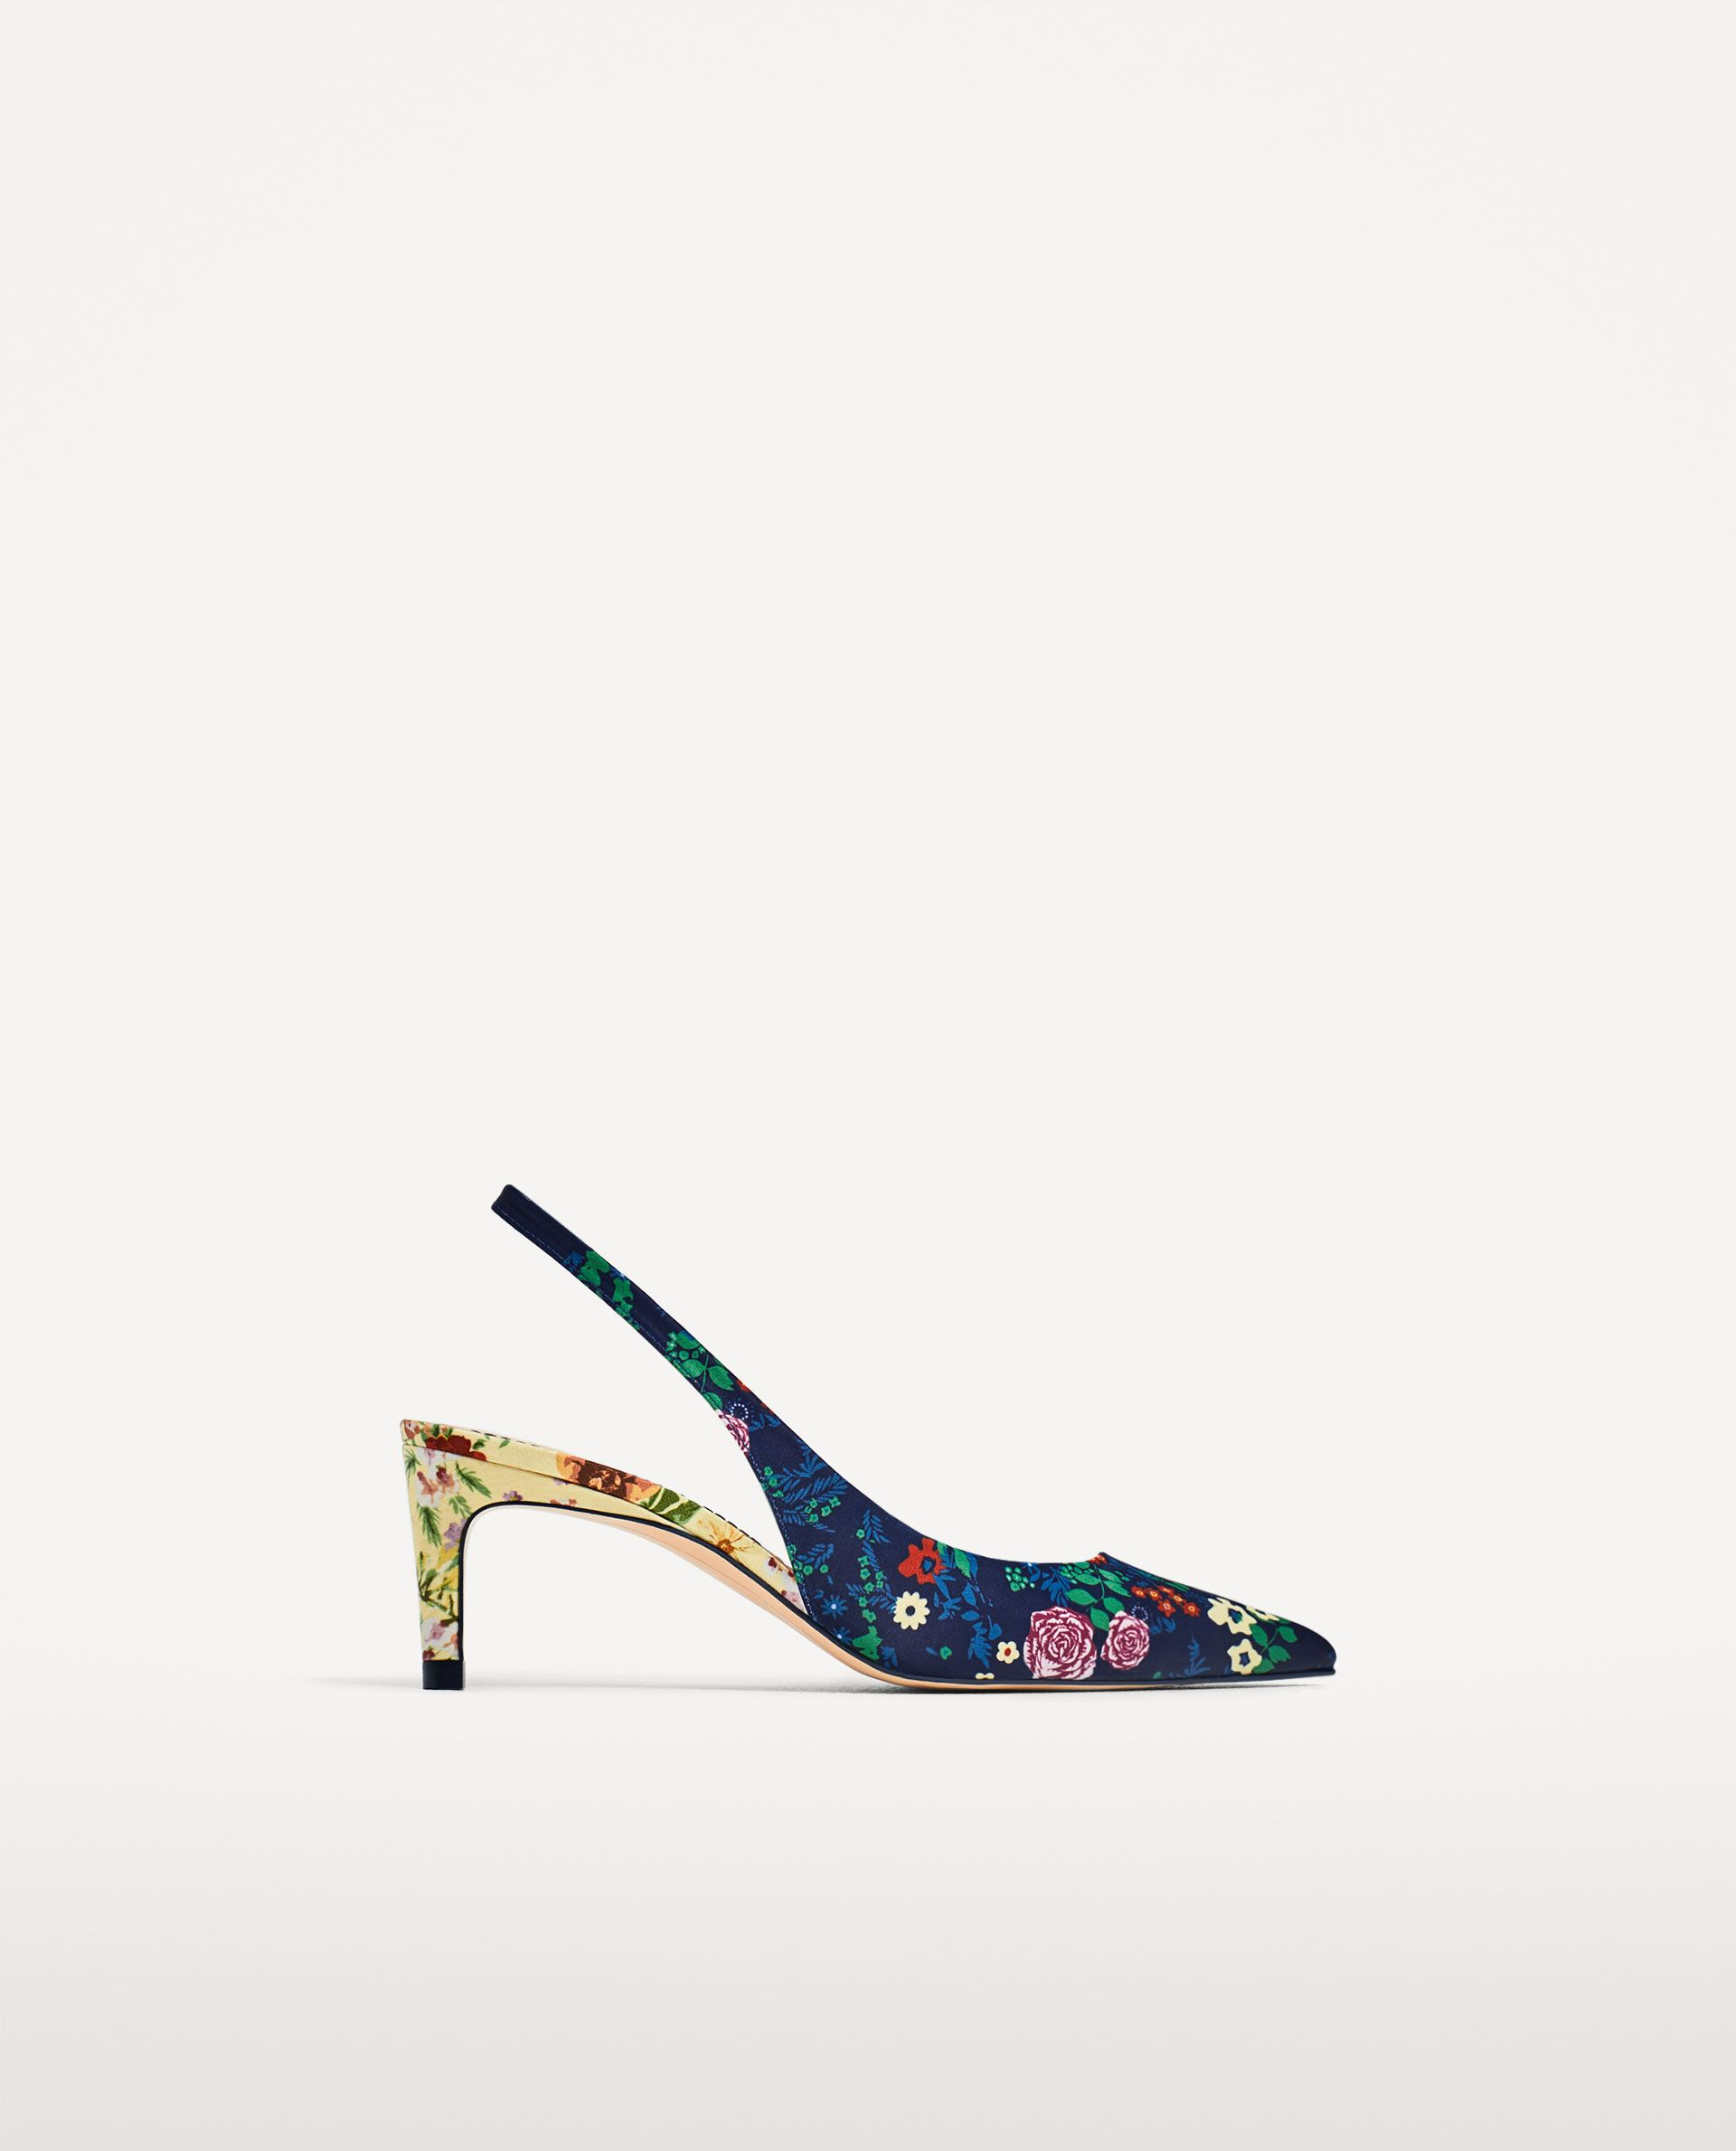 These Zara Shoes Have Almost Sold Out Everywhere Which Makes Us Want Them Even More The best spring 2017 shoe trends, according to zara. these zara shoes have almost sold out